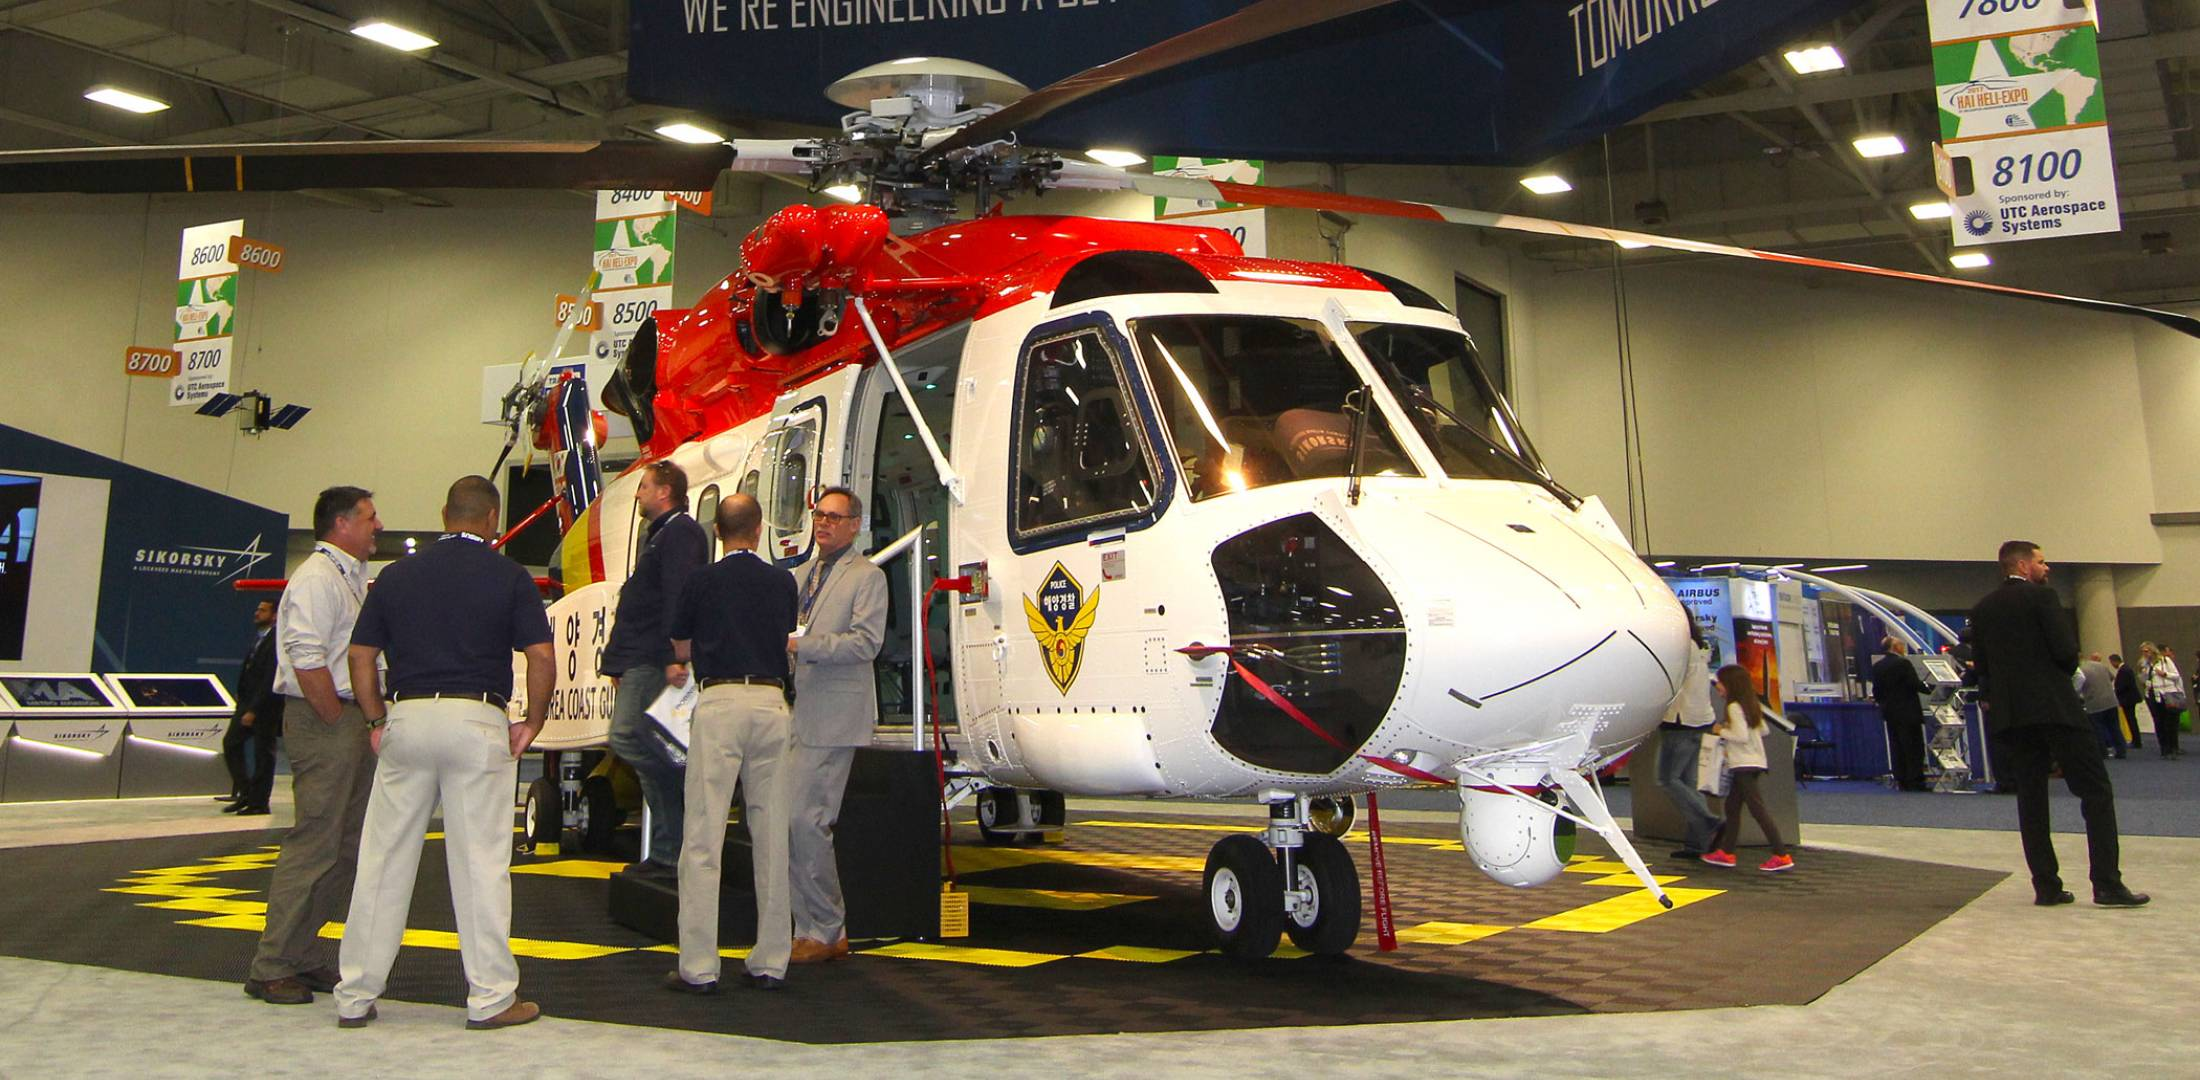 Since being absorbed into the Lockheed Martin fold a year ago, Sikorsky has been working to improve customer support. Photo: Mariano Rosales